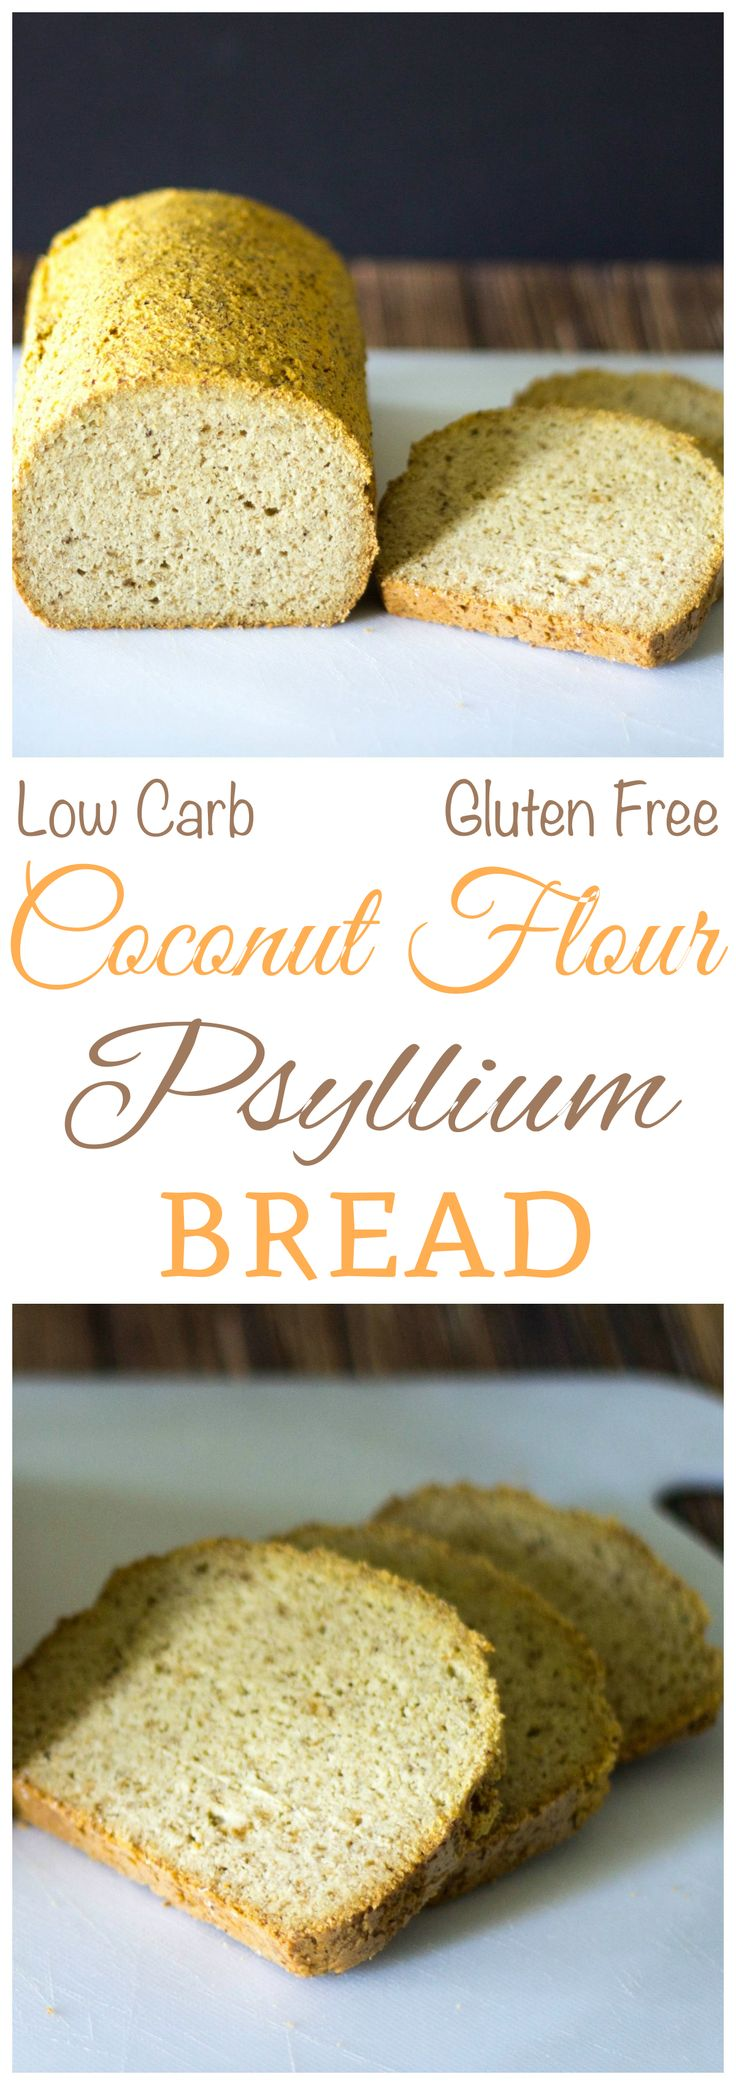 Want an easy low carb keto Paleo bread? Try this gluten free coconut flour psyllium husk bread recipe. It's a tasty bread to serve with breakfast or dinner.